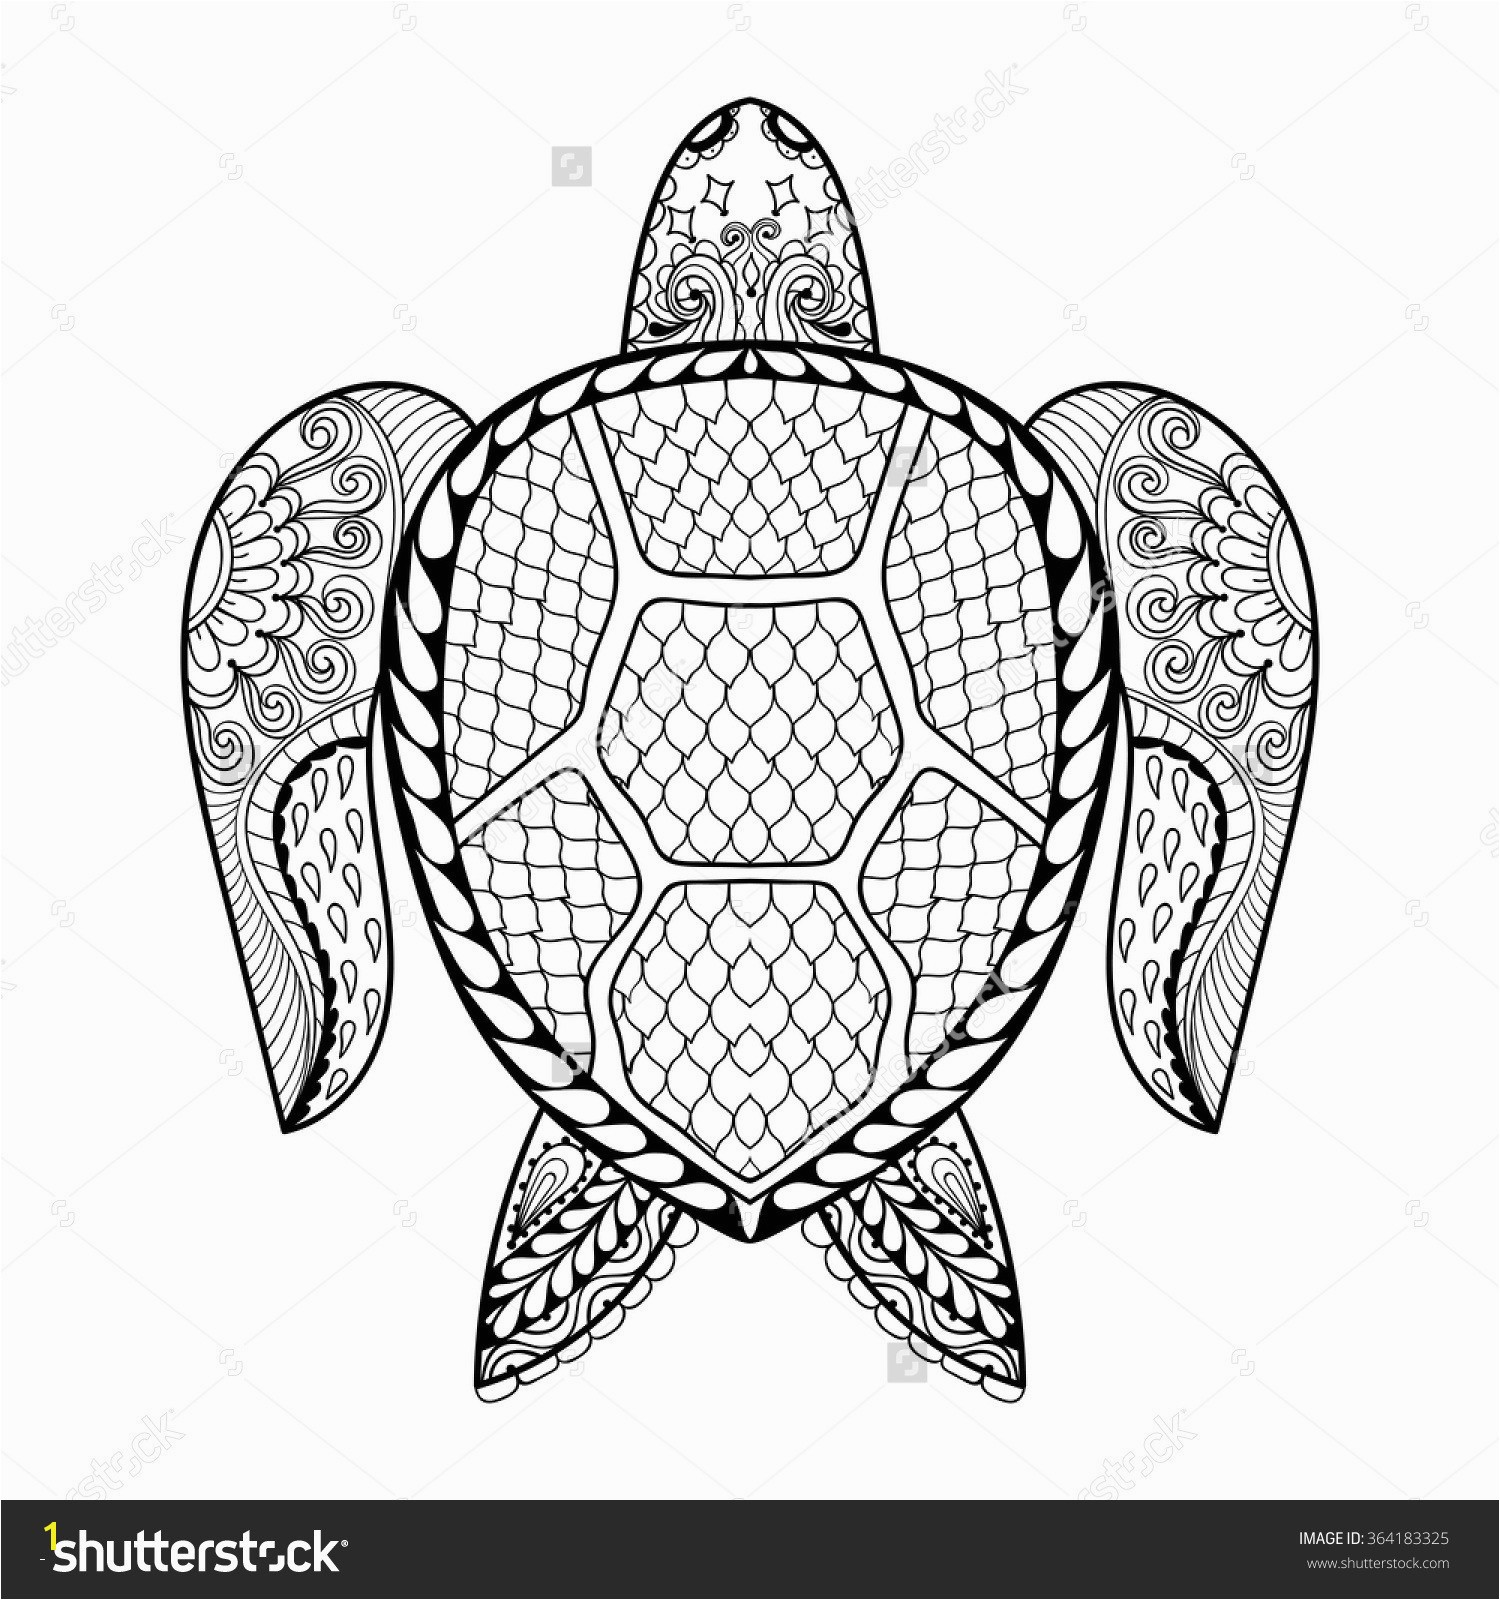 Turtle Coloring Pages For Adults Animal Mandala Coloring Pages New Coloring Pages Mandala Animals